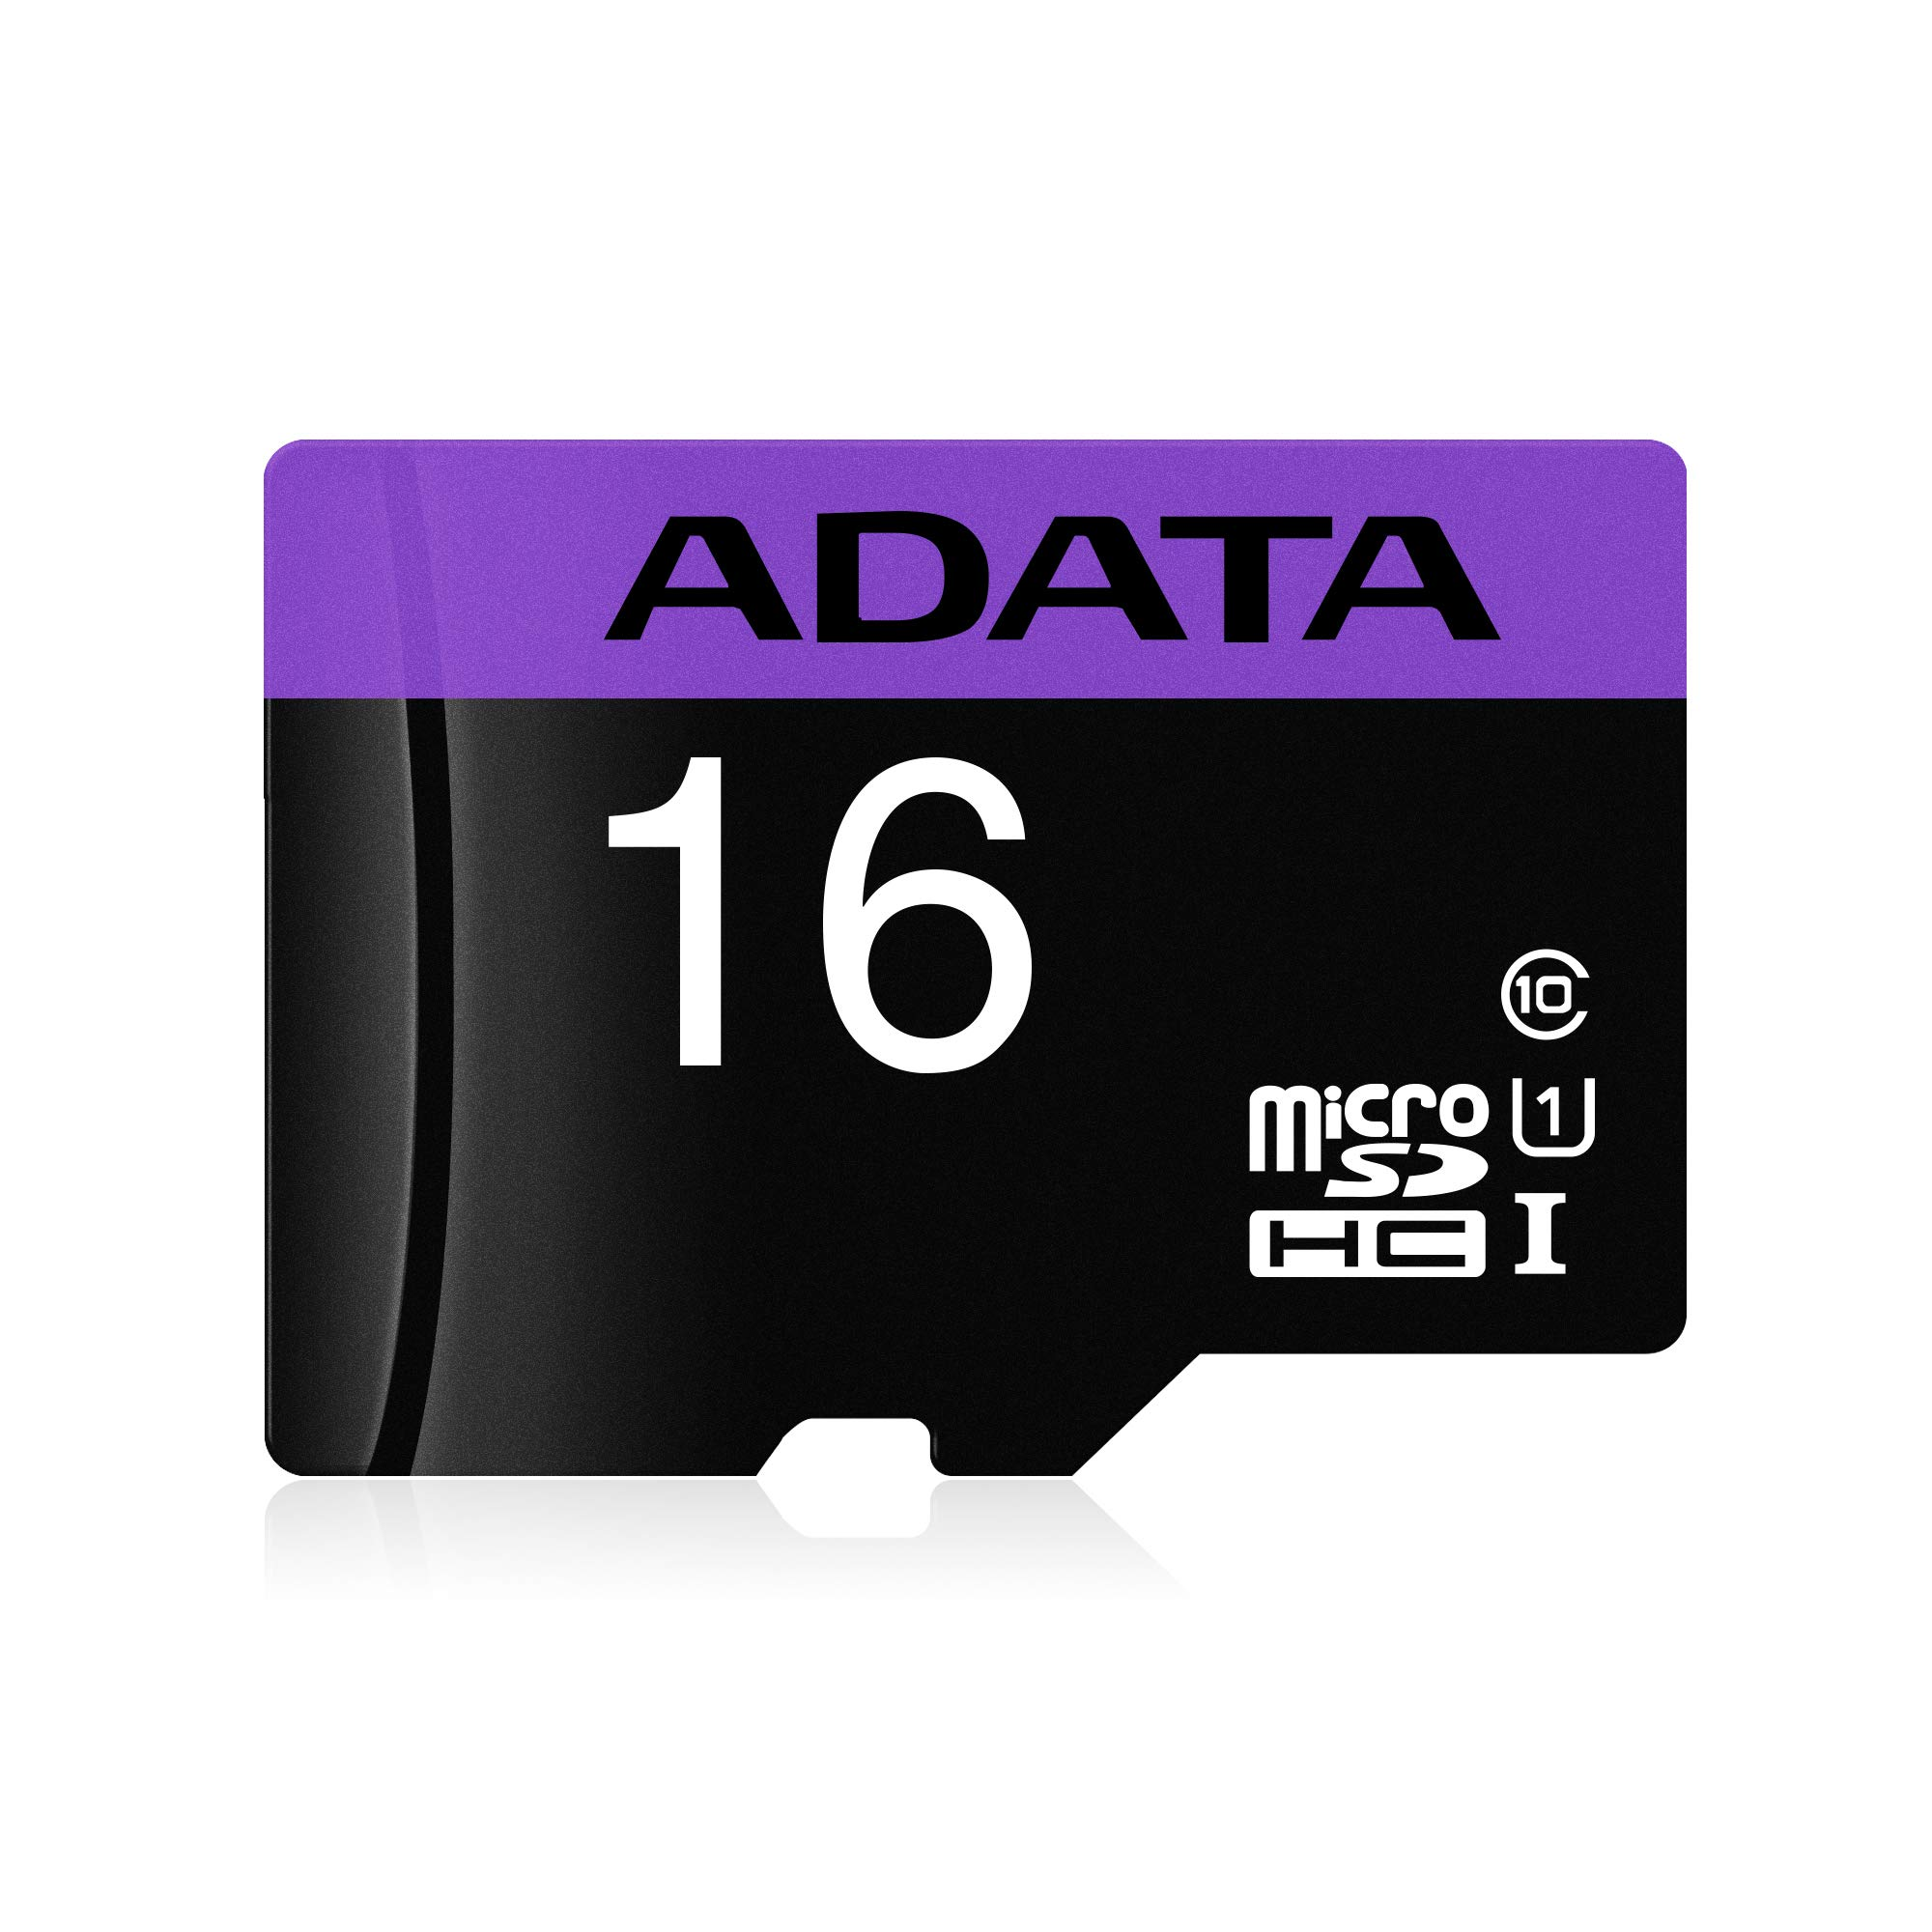 Adata Premier A1 16GB Class 10 UHS-I microSD Card | MicroSDHC/SDXC with Speed up to 100MB/s | V10 Series Memory Card | AUSDH16GUICL10A1-R | Purple (B078KWWCTZ) Amazon Price History, Amazon Price Tracker